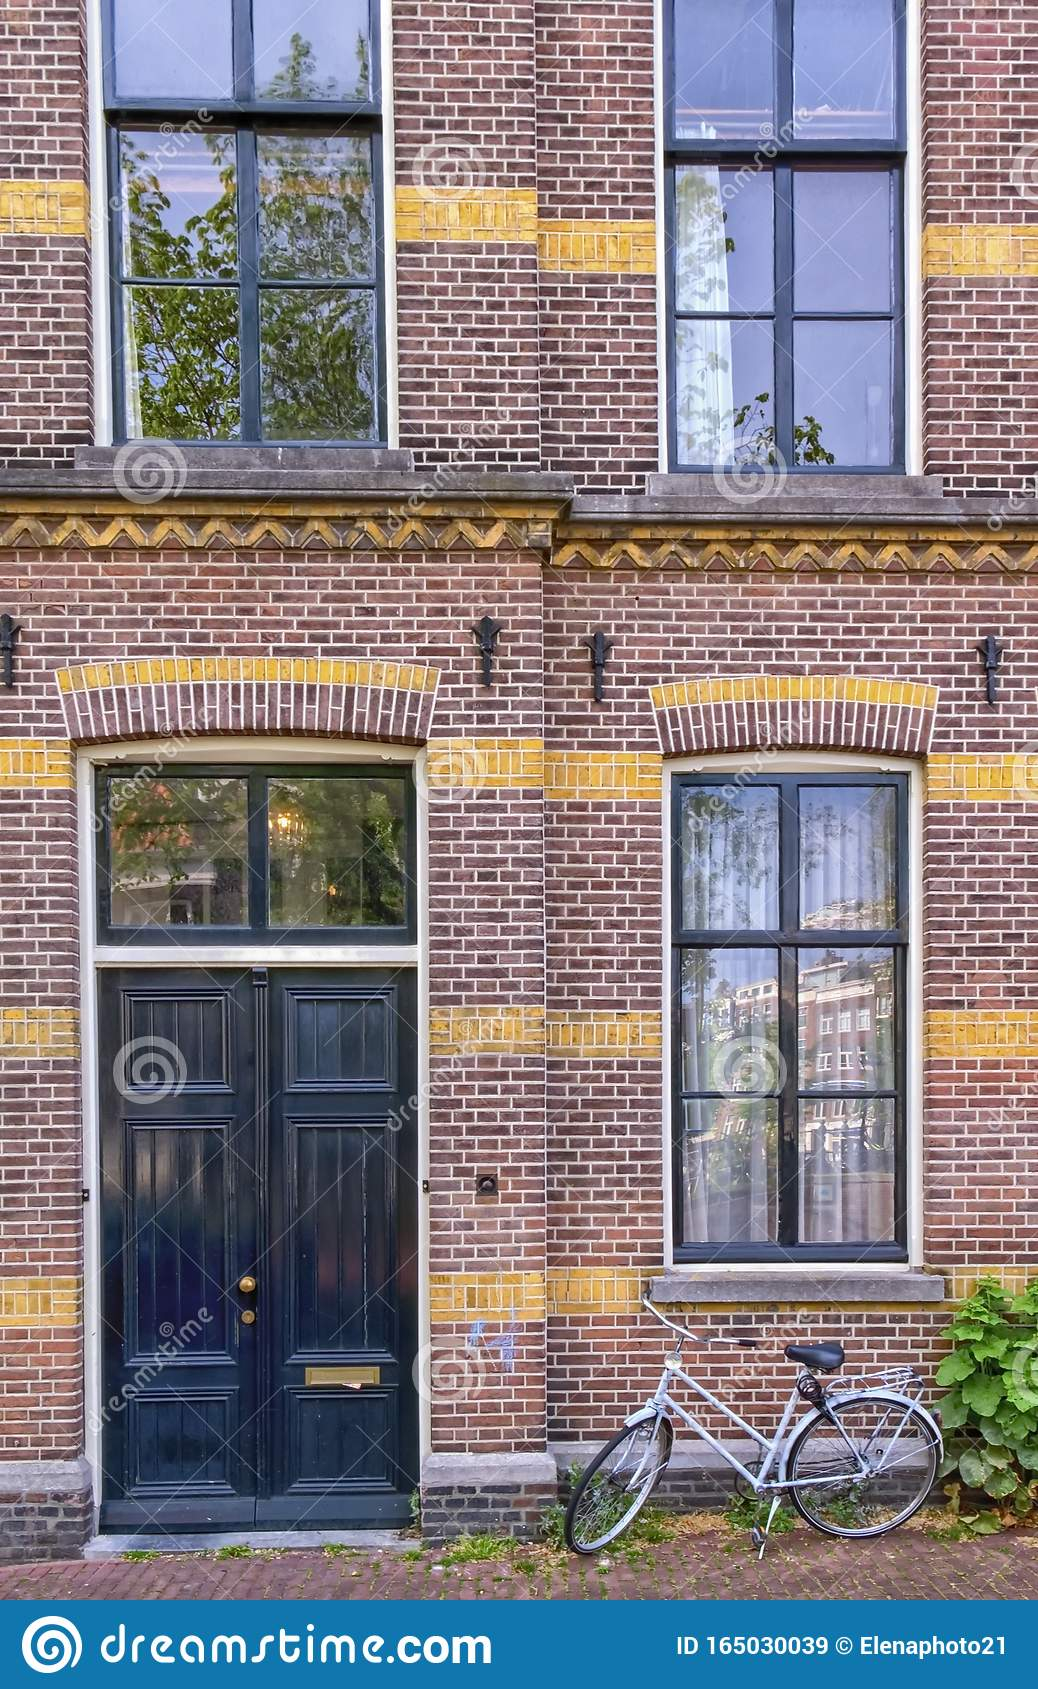 Facade of historic building in Amsterdam, Netherlands